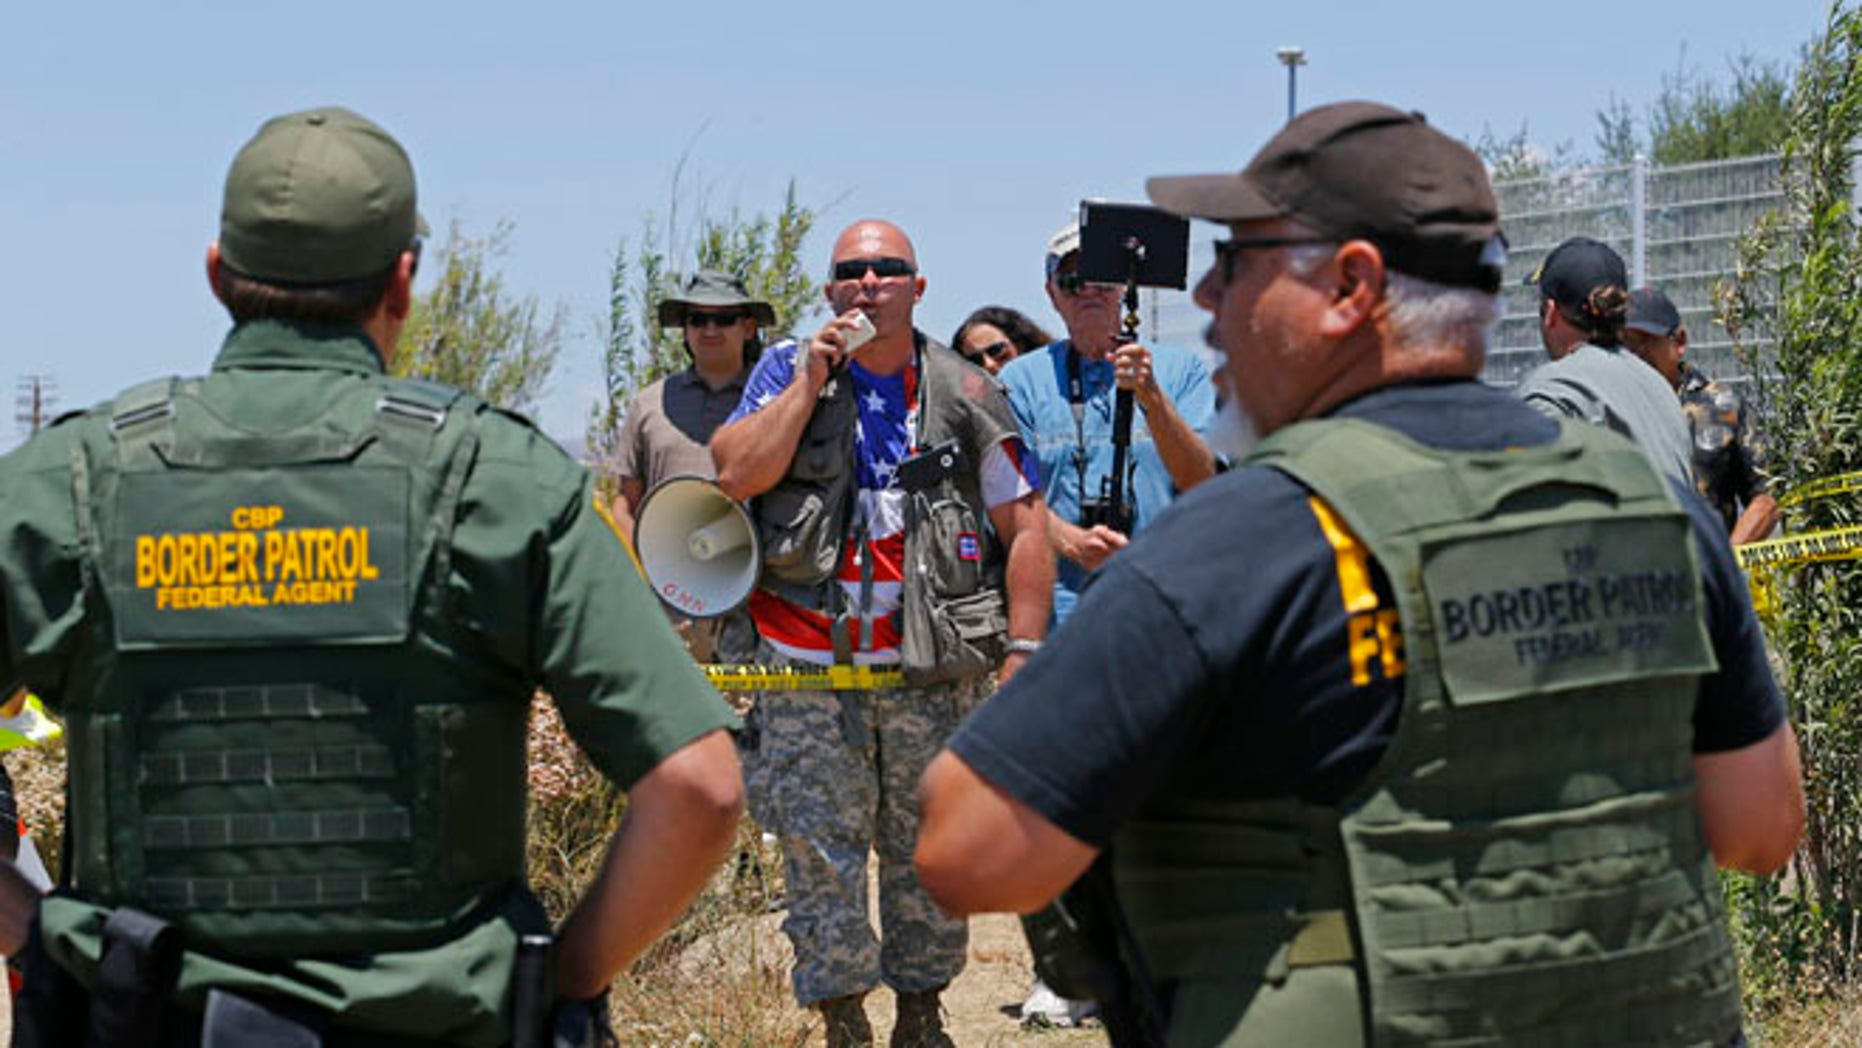 FILE: July 4, 2014: Border Patrol agents at their facility in Murrieta, Calif.